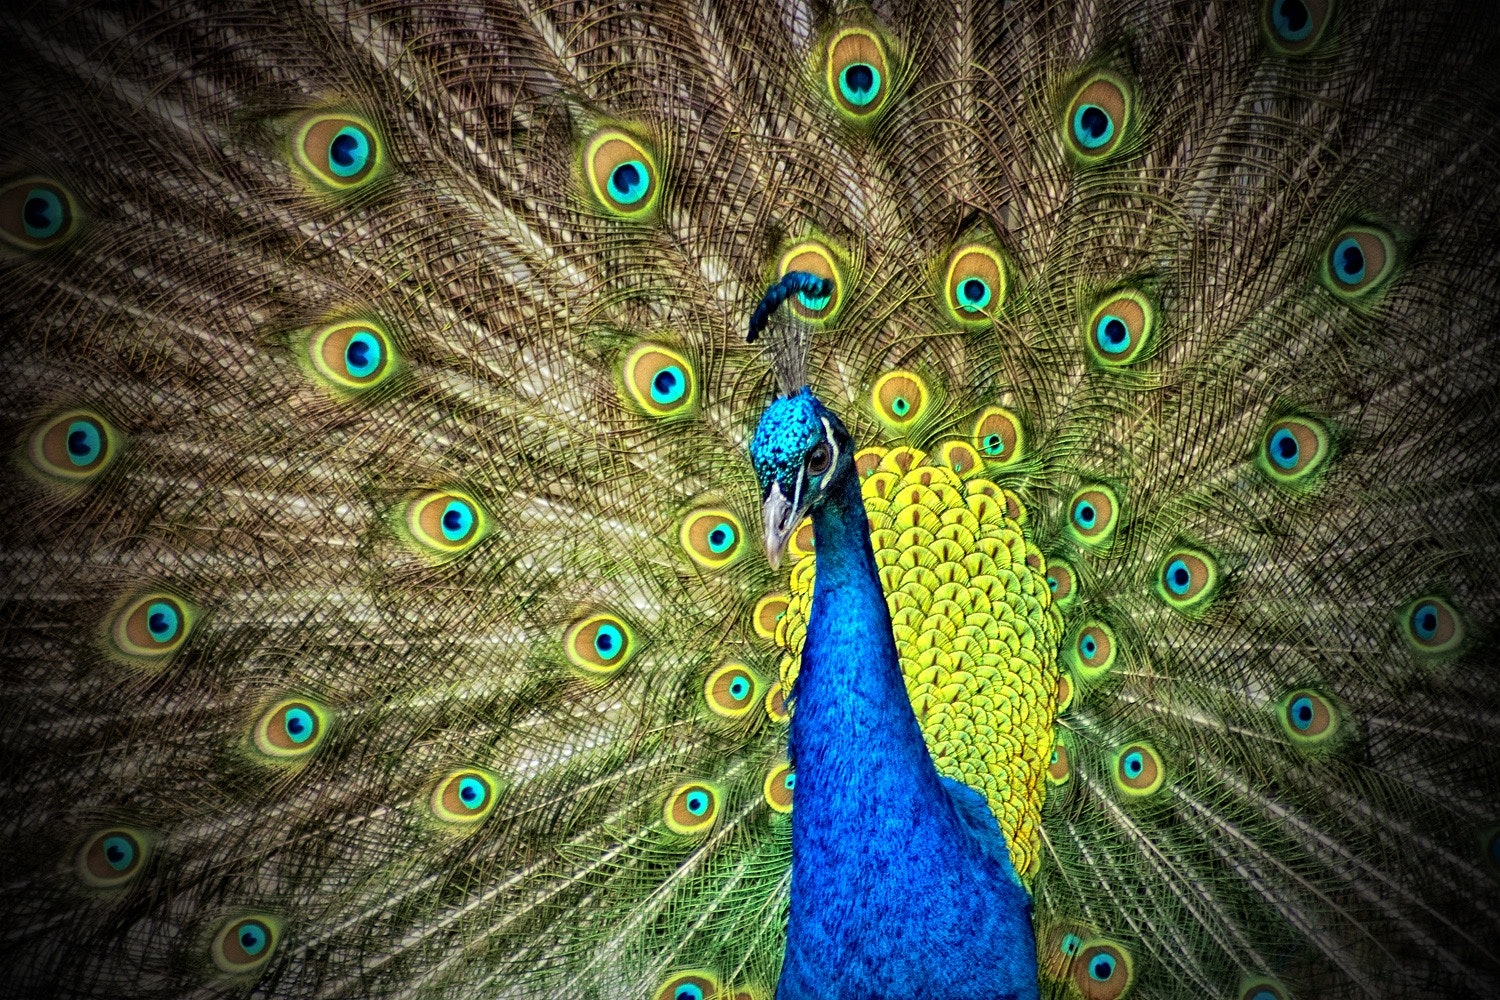 The Significance Of Peacock In Ancient Culture And Art 86